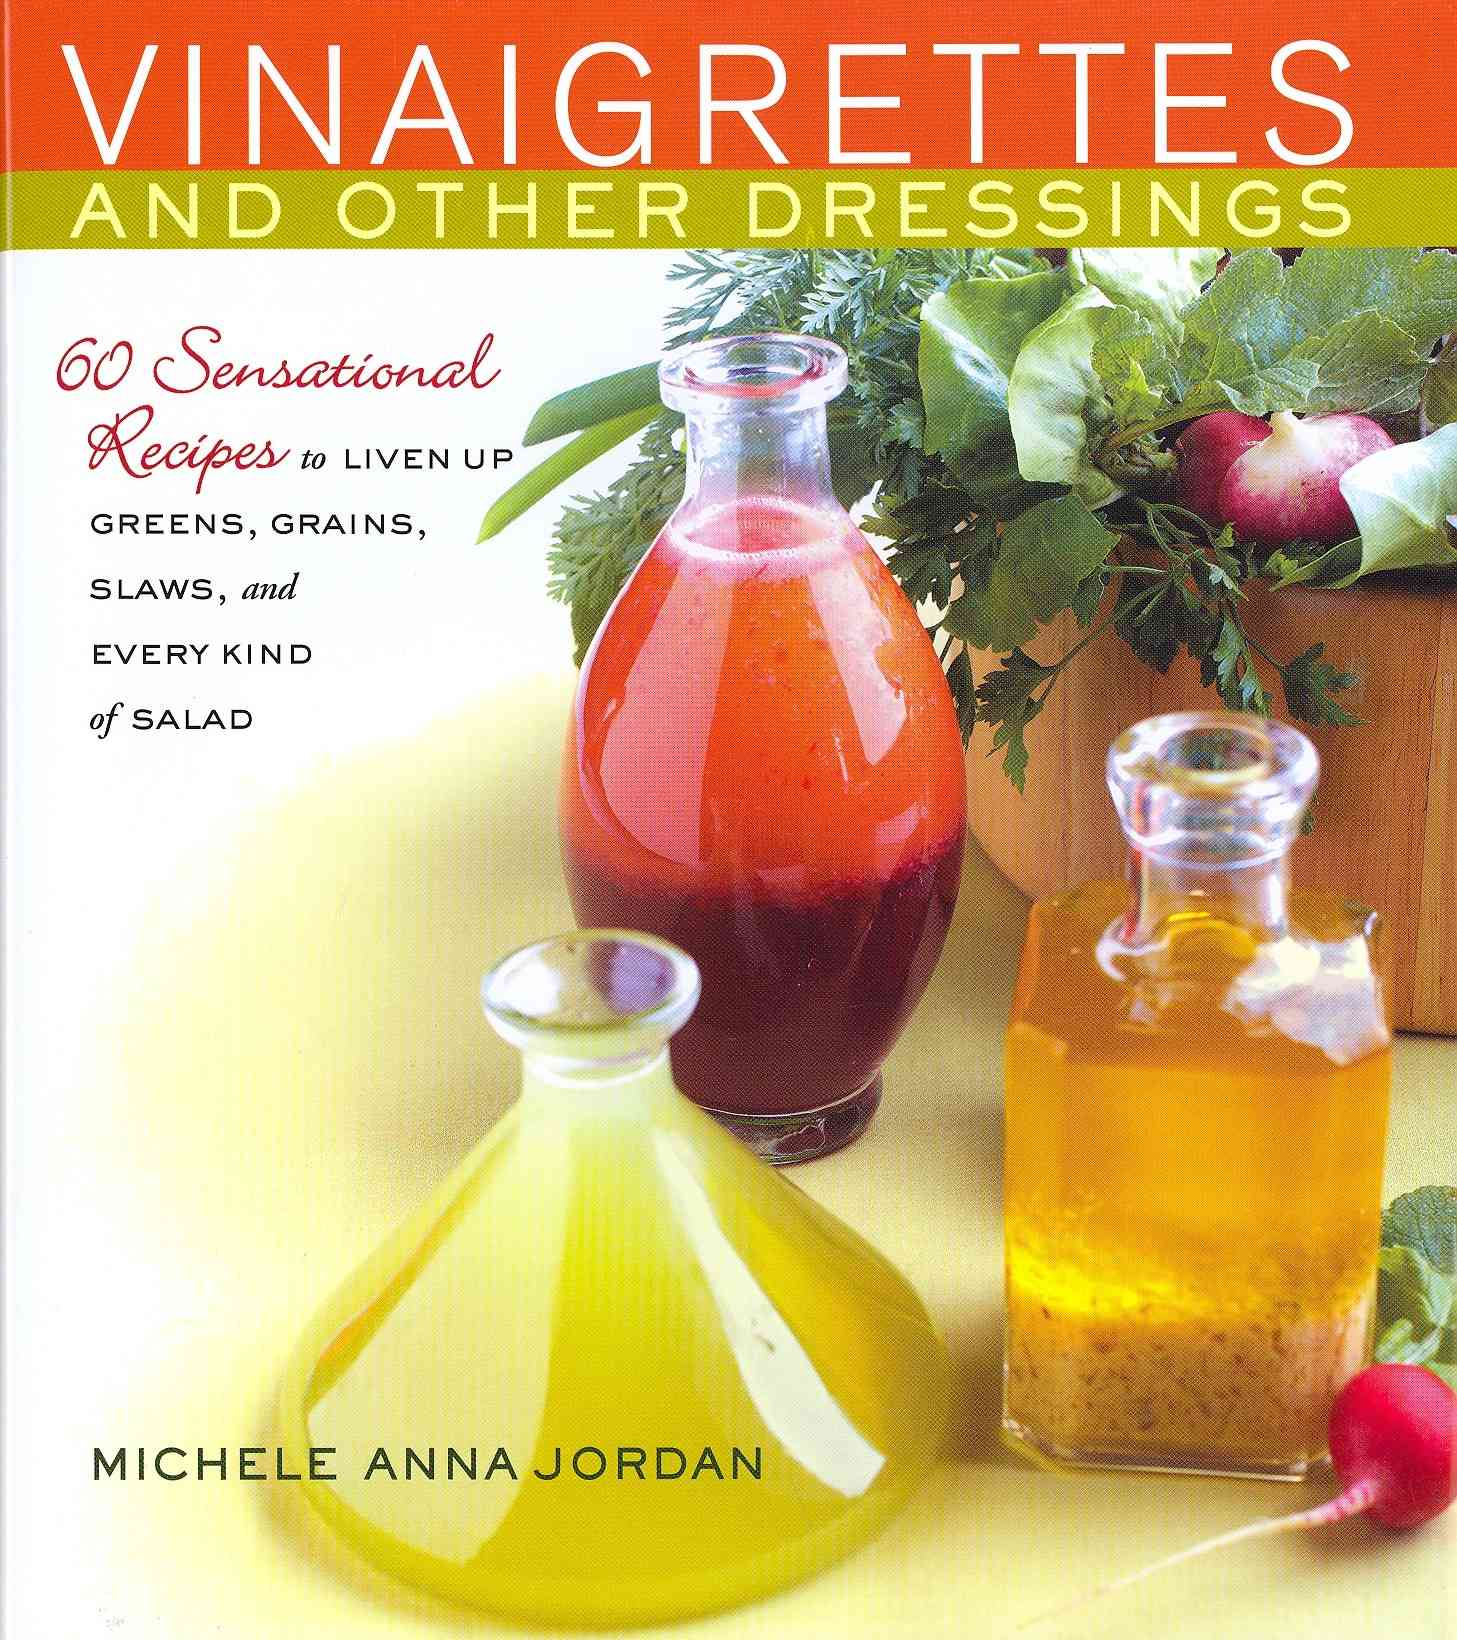 Vinaigrettes and Other Dressings: 60 Sensational Recipes to Liven Up Greens, Grains, Slaws, and Every Kind of Salad (Hardcover)